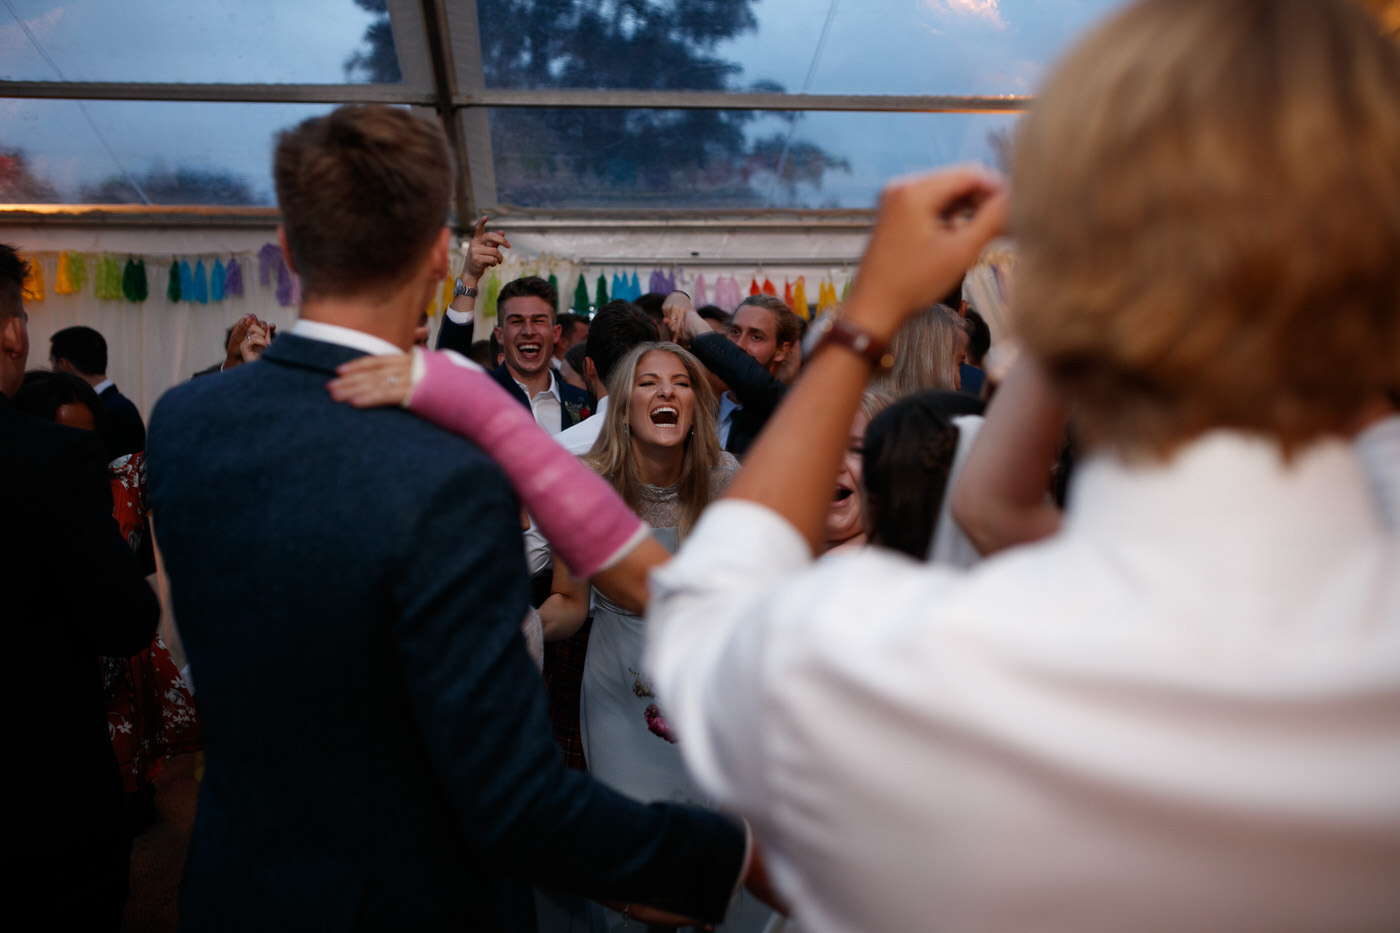 shropshire wedding photographer captures candid moment on dance floor